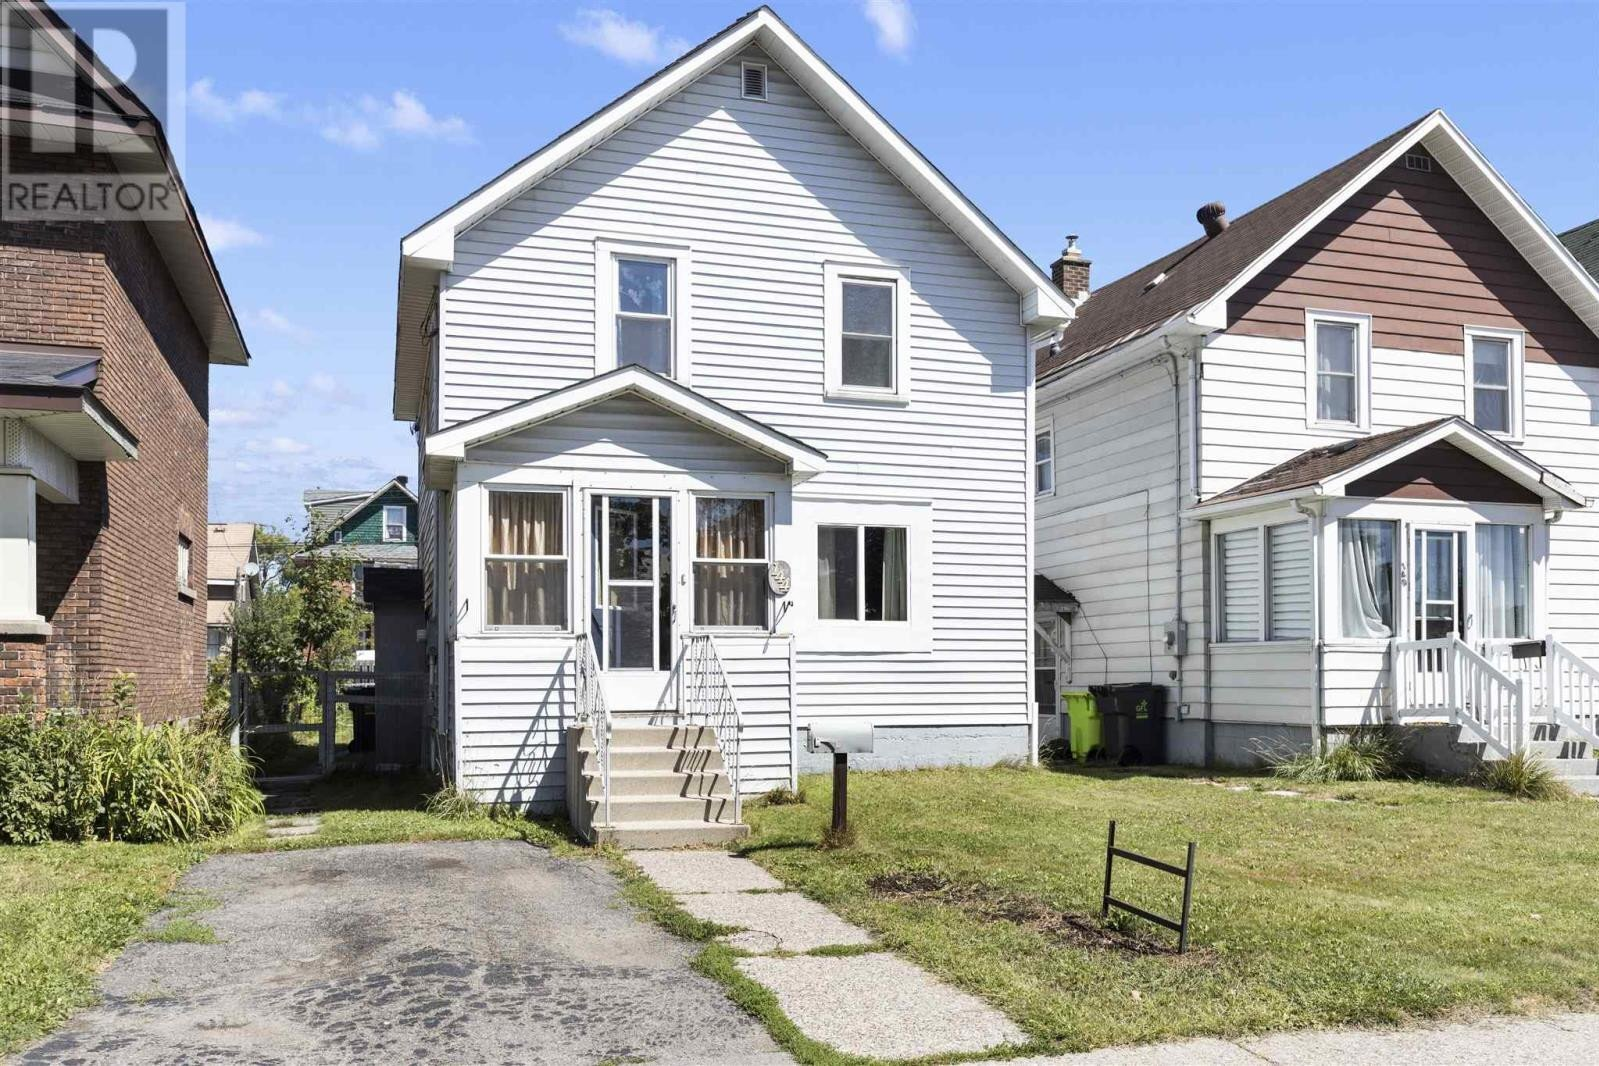 House for sale at 144 Central Park Ave Sault Ste. Marie Ontario - MLS: SM129419